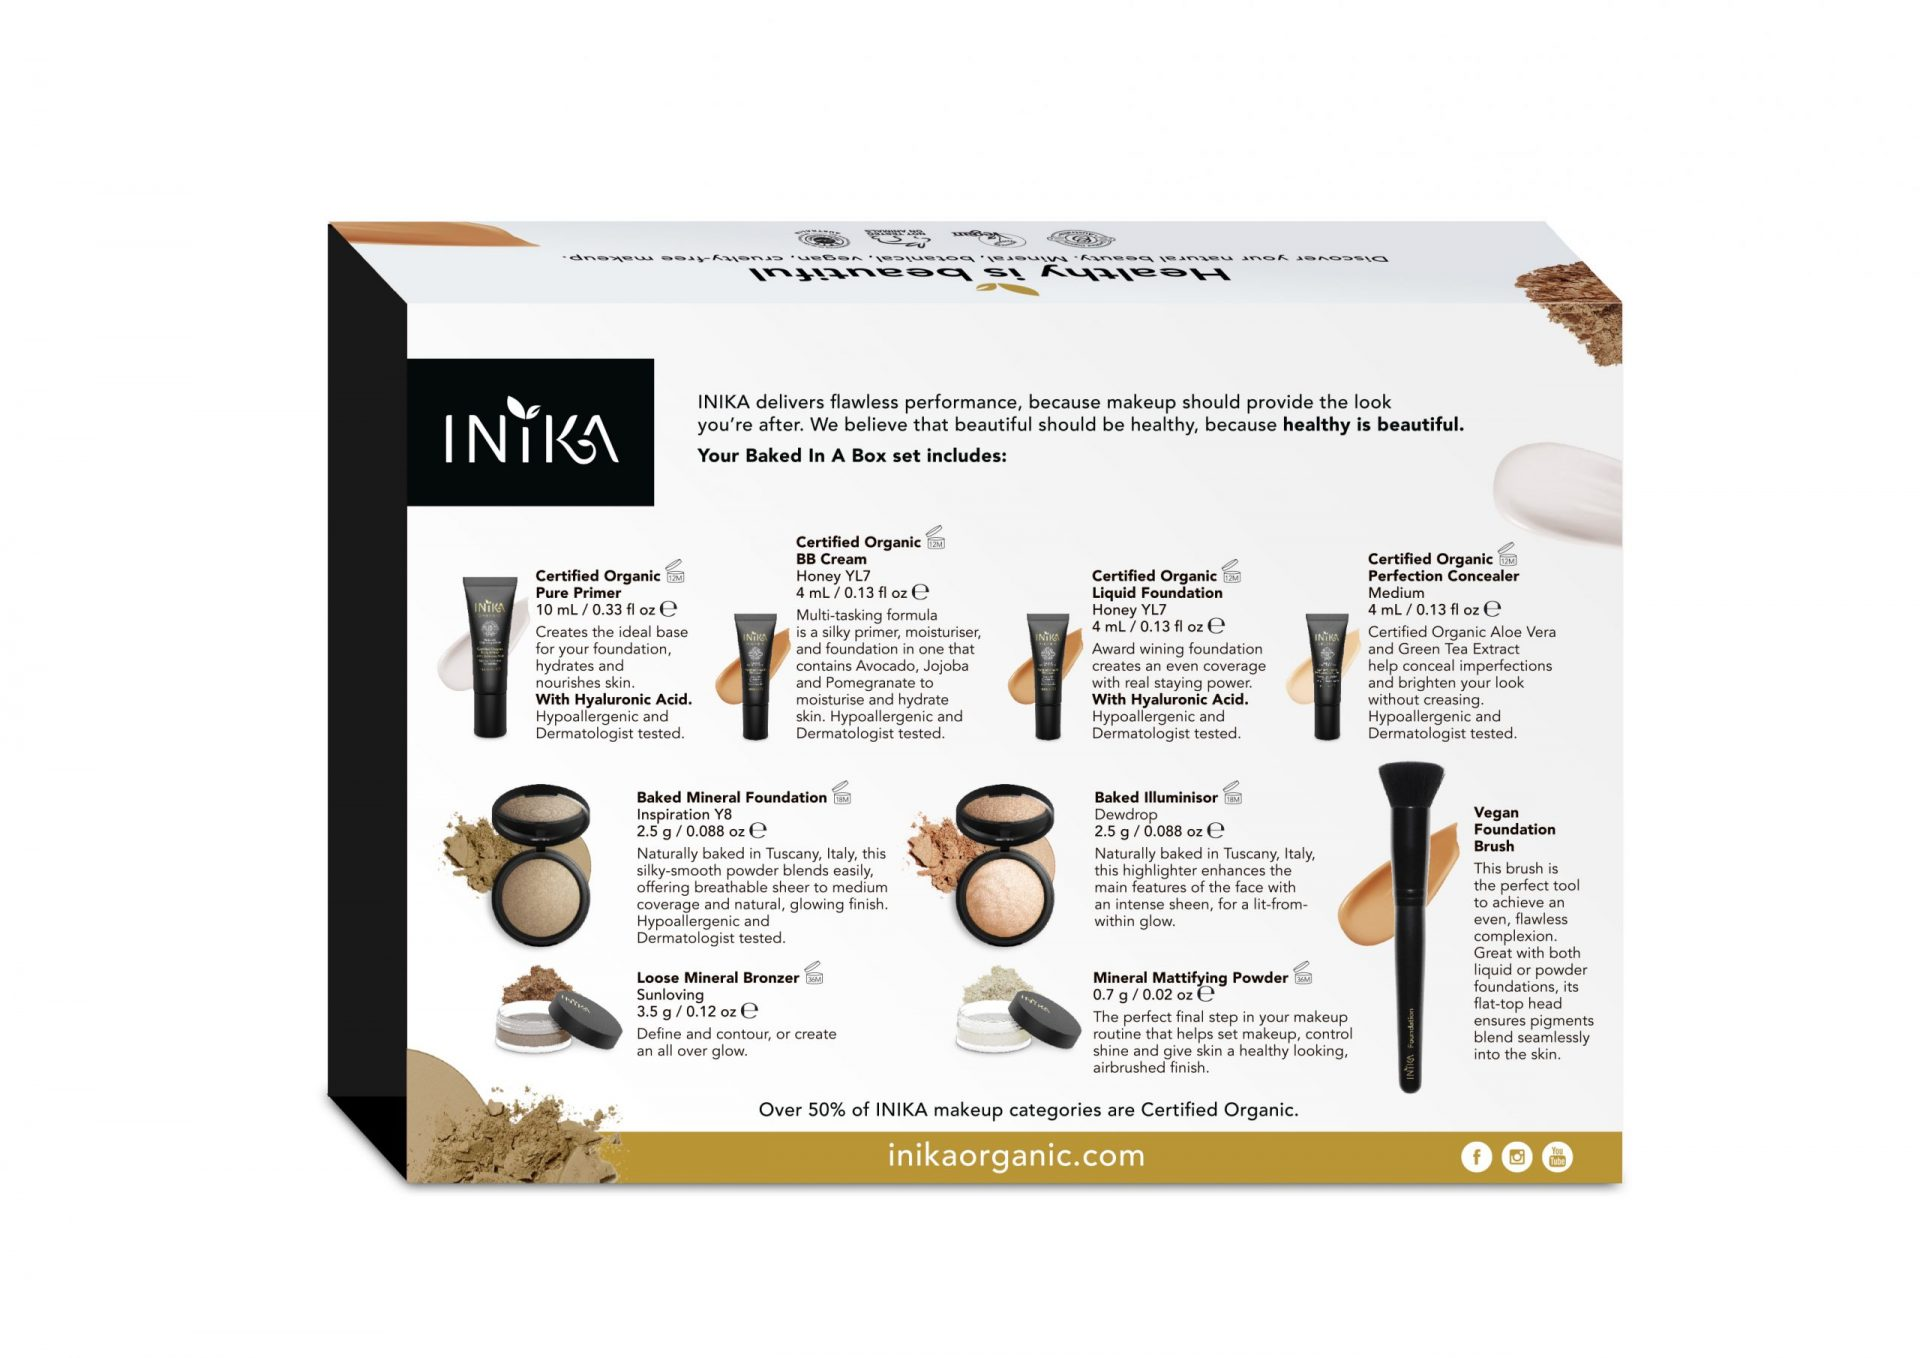 INIKA Baked In A Box Inspiration